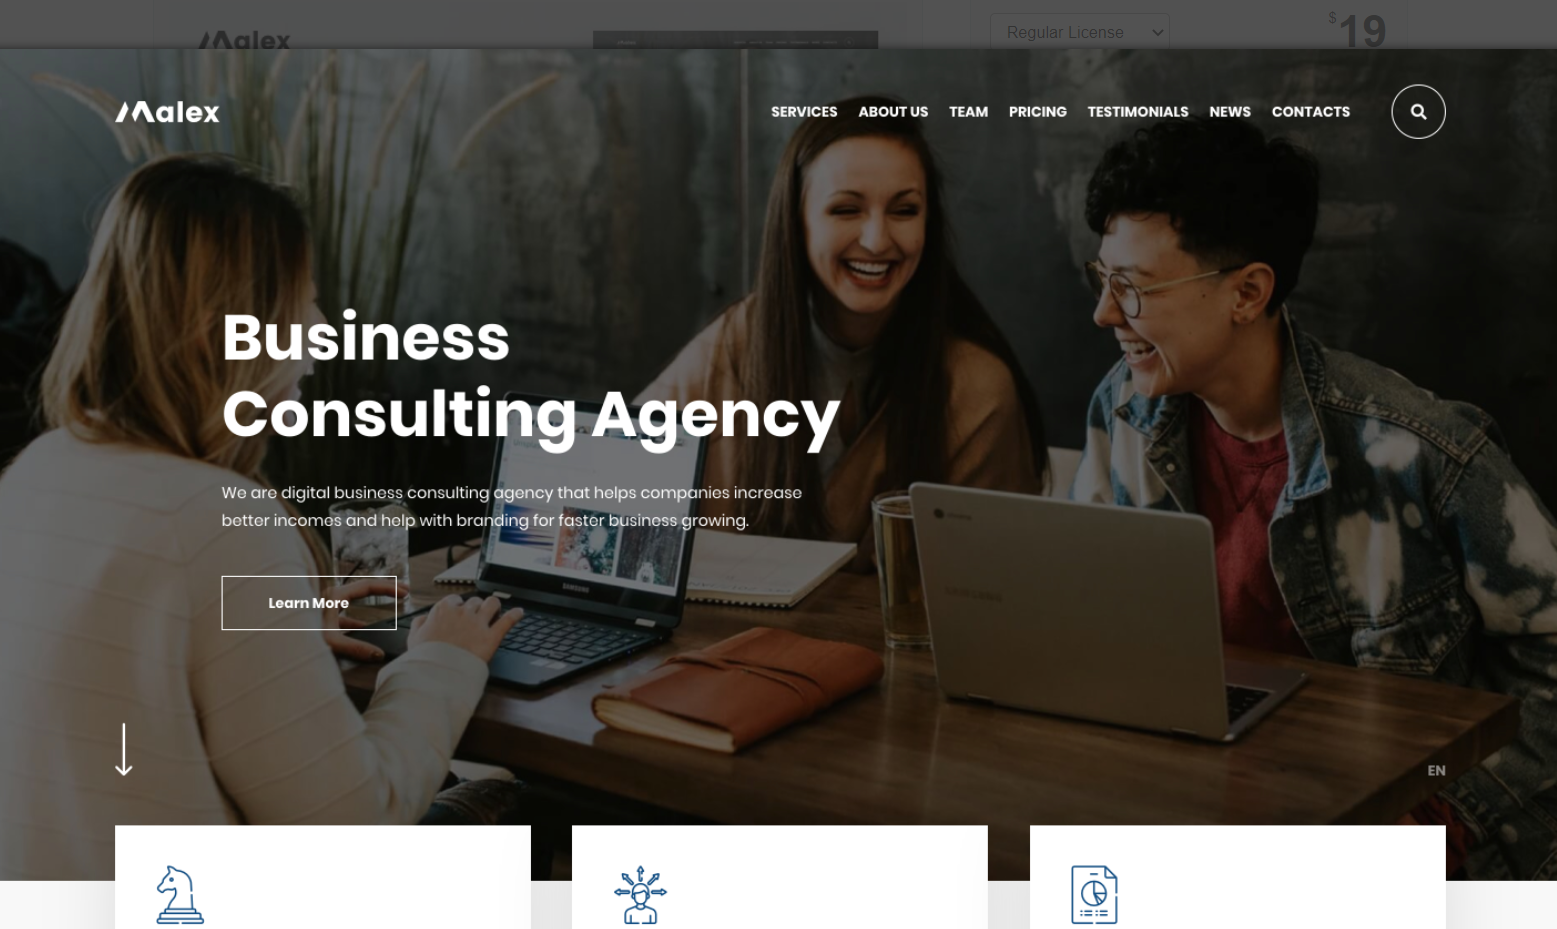 Malex - PSD-sjabloon voor Business Consulting Agency